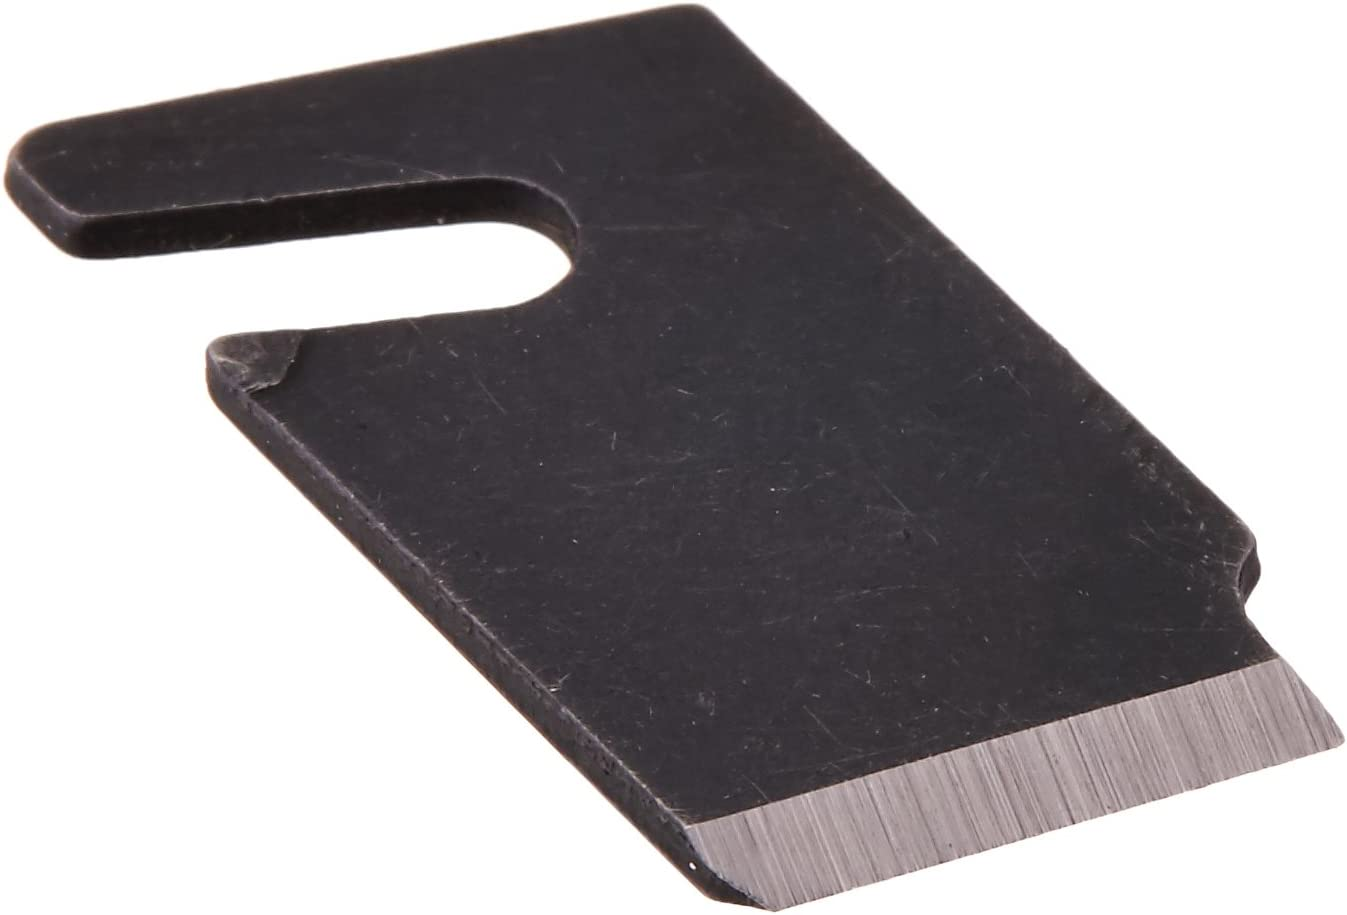 Fletcher Terry Company 5 Pack, Replacement Cutter Blade